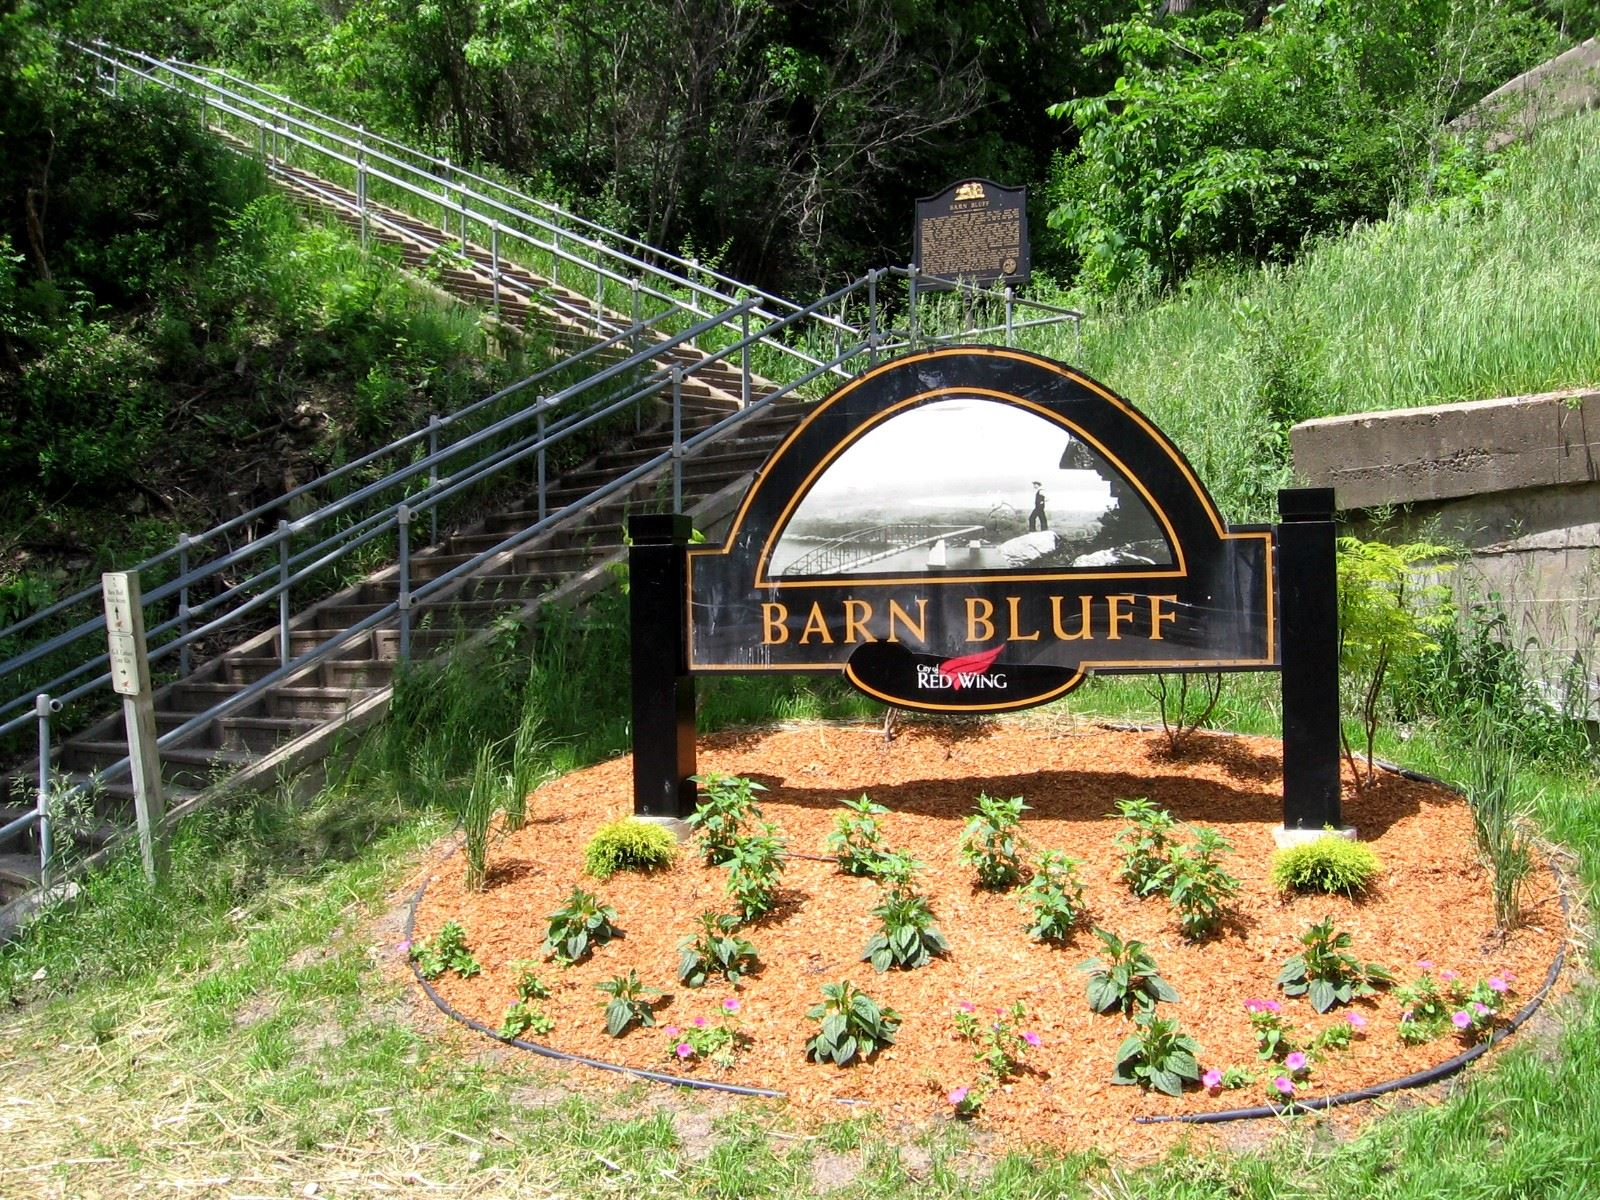 Barns Bluff Sign